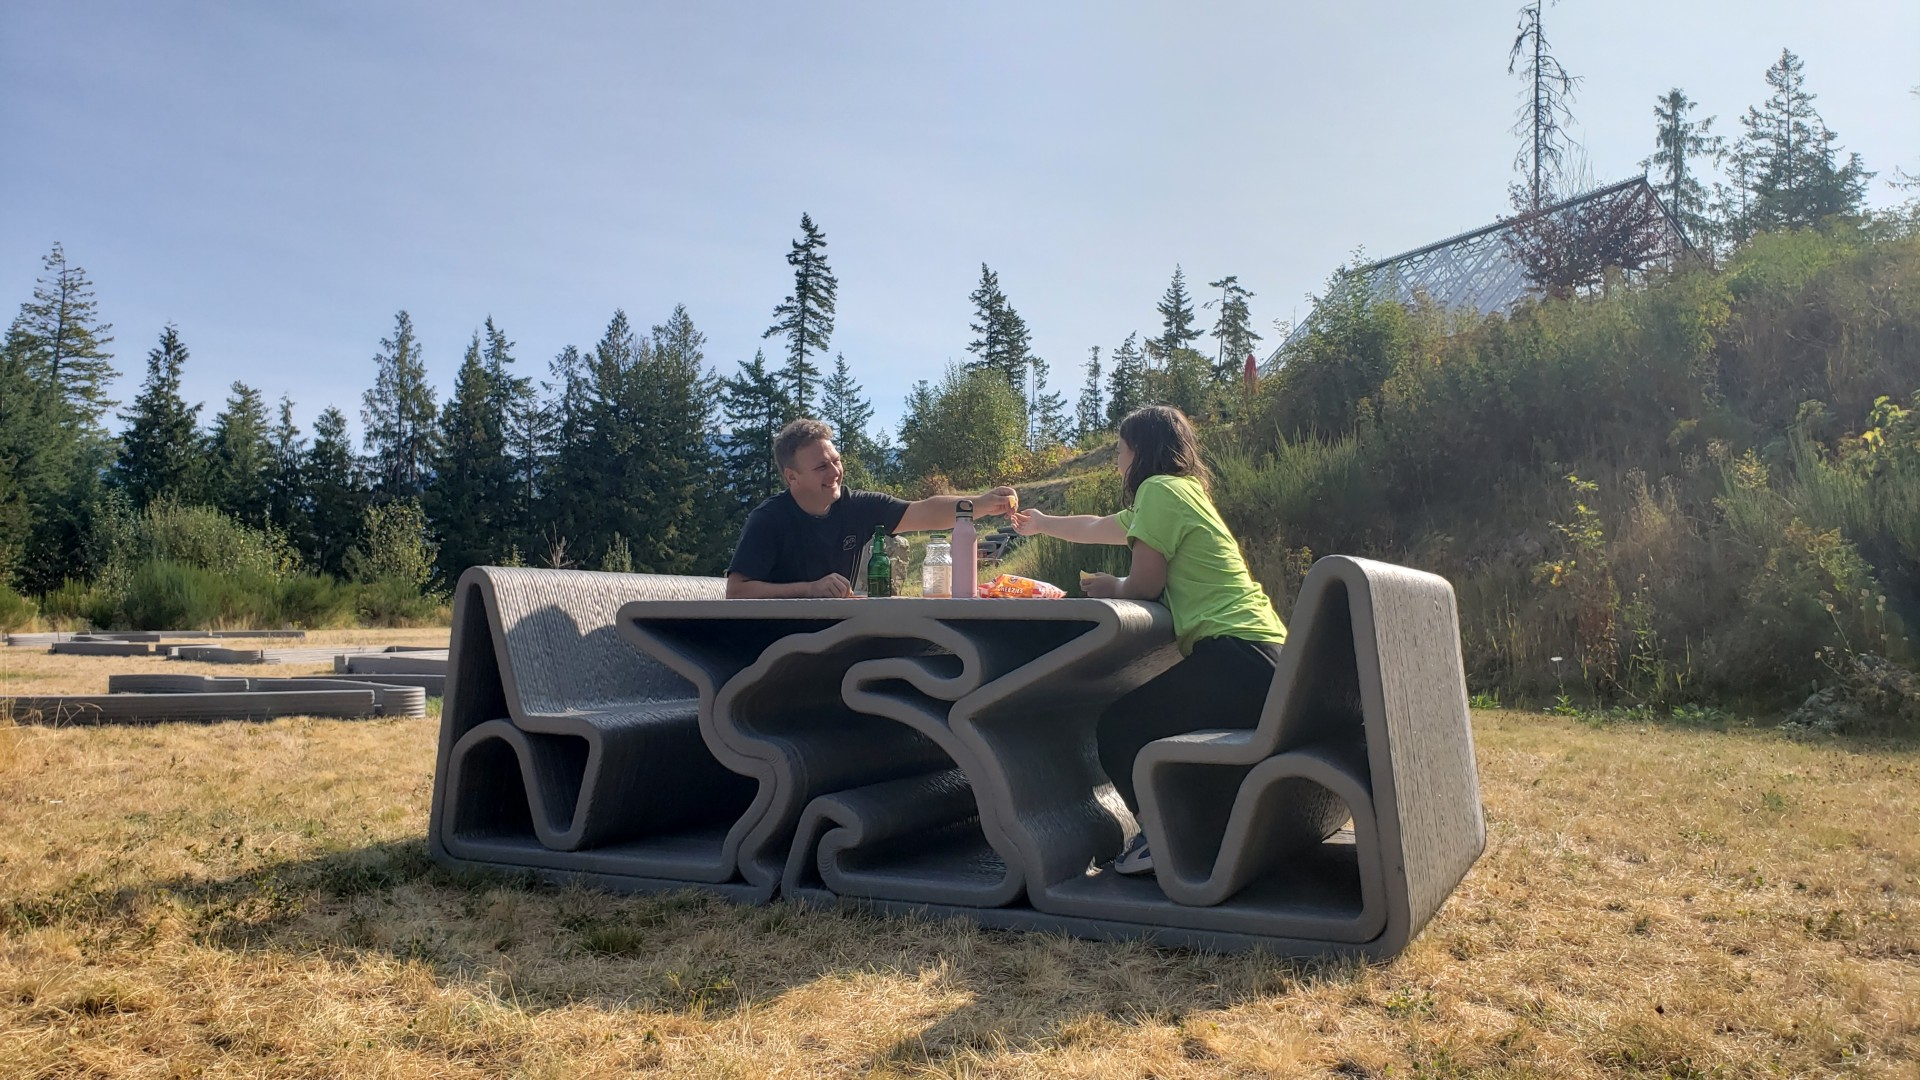 Ian Comishin shares lunch with his daughter on the printed Bunny Picnic Table.